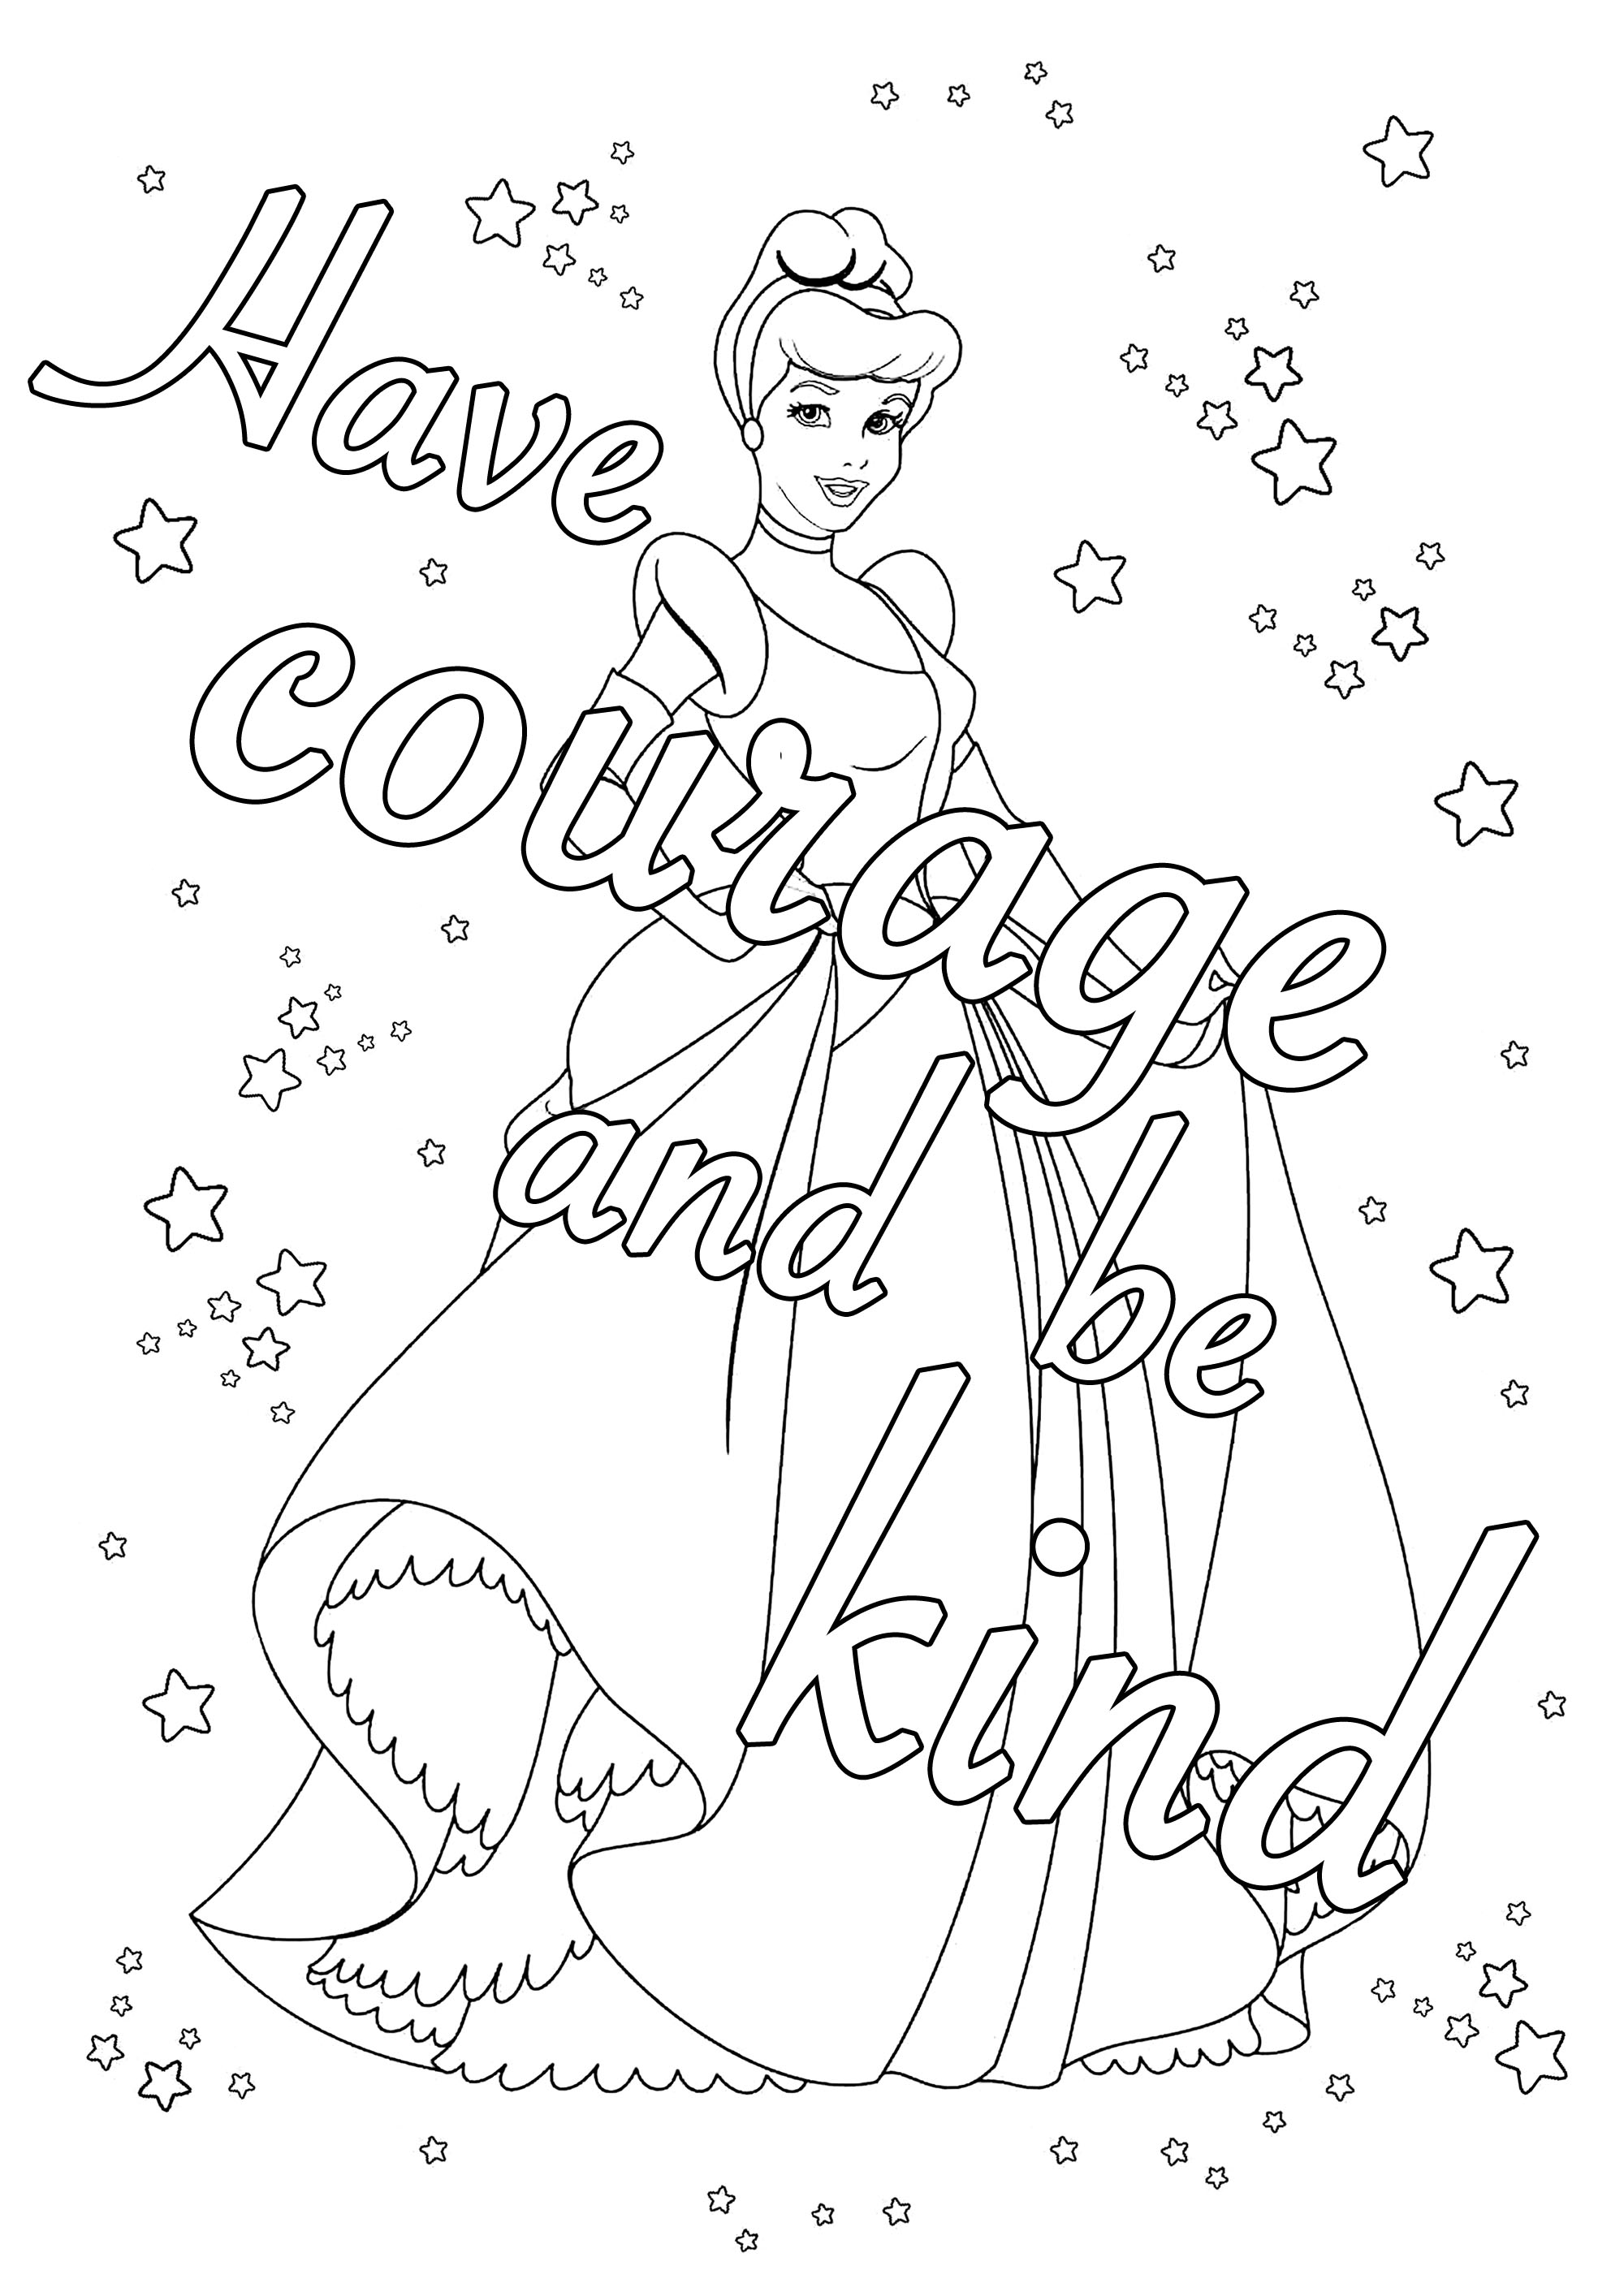 Have Courage And Be Kind From Cinderella Positive Inspiring Quotes Adult Coloring Pages